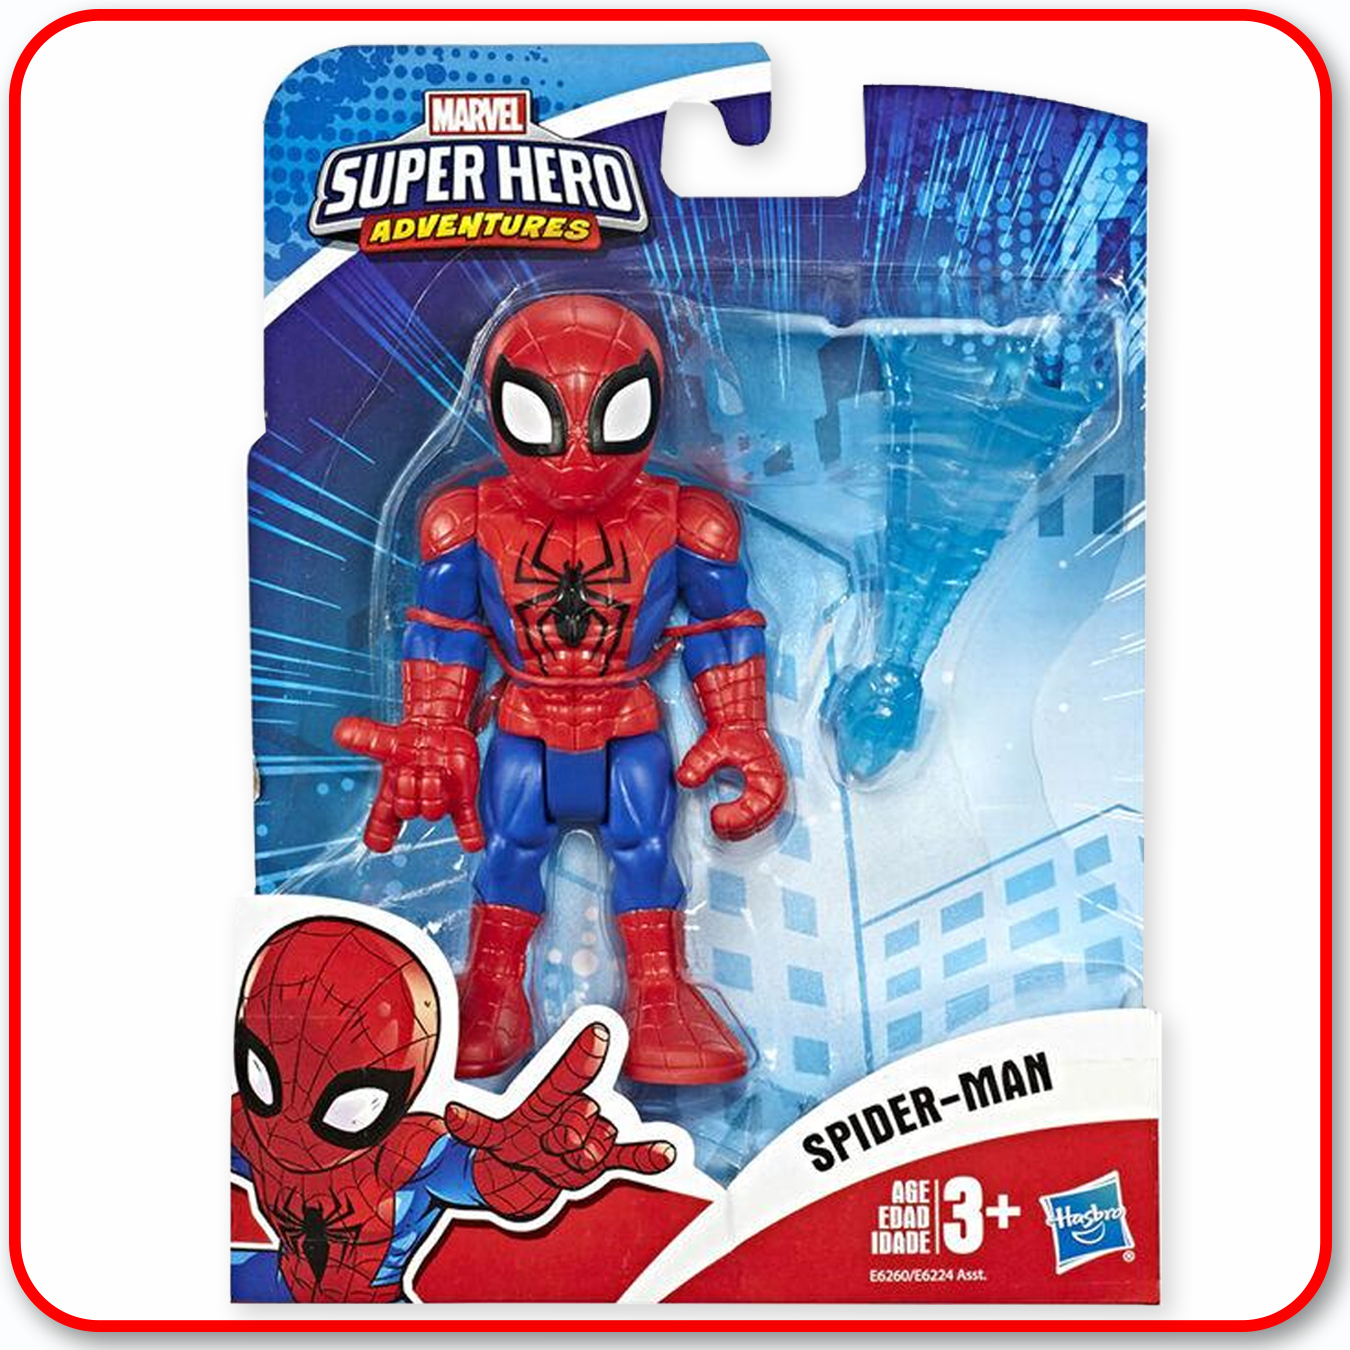 Super Hero Adventures - Spiderman